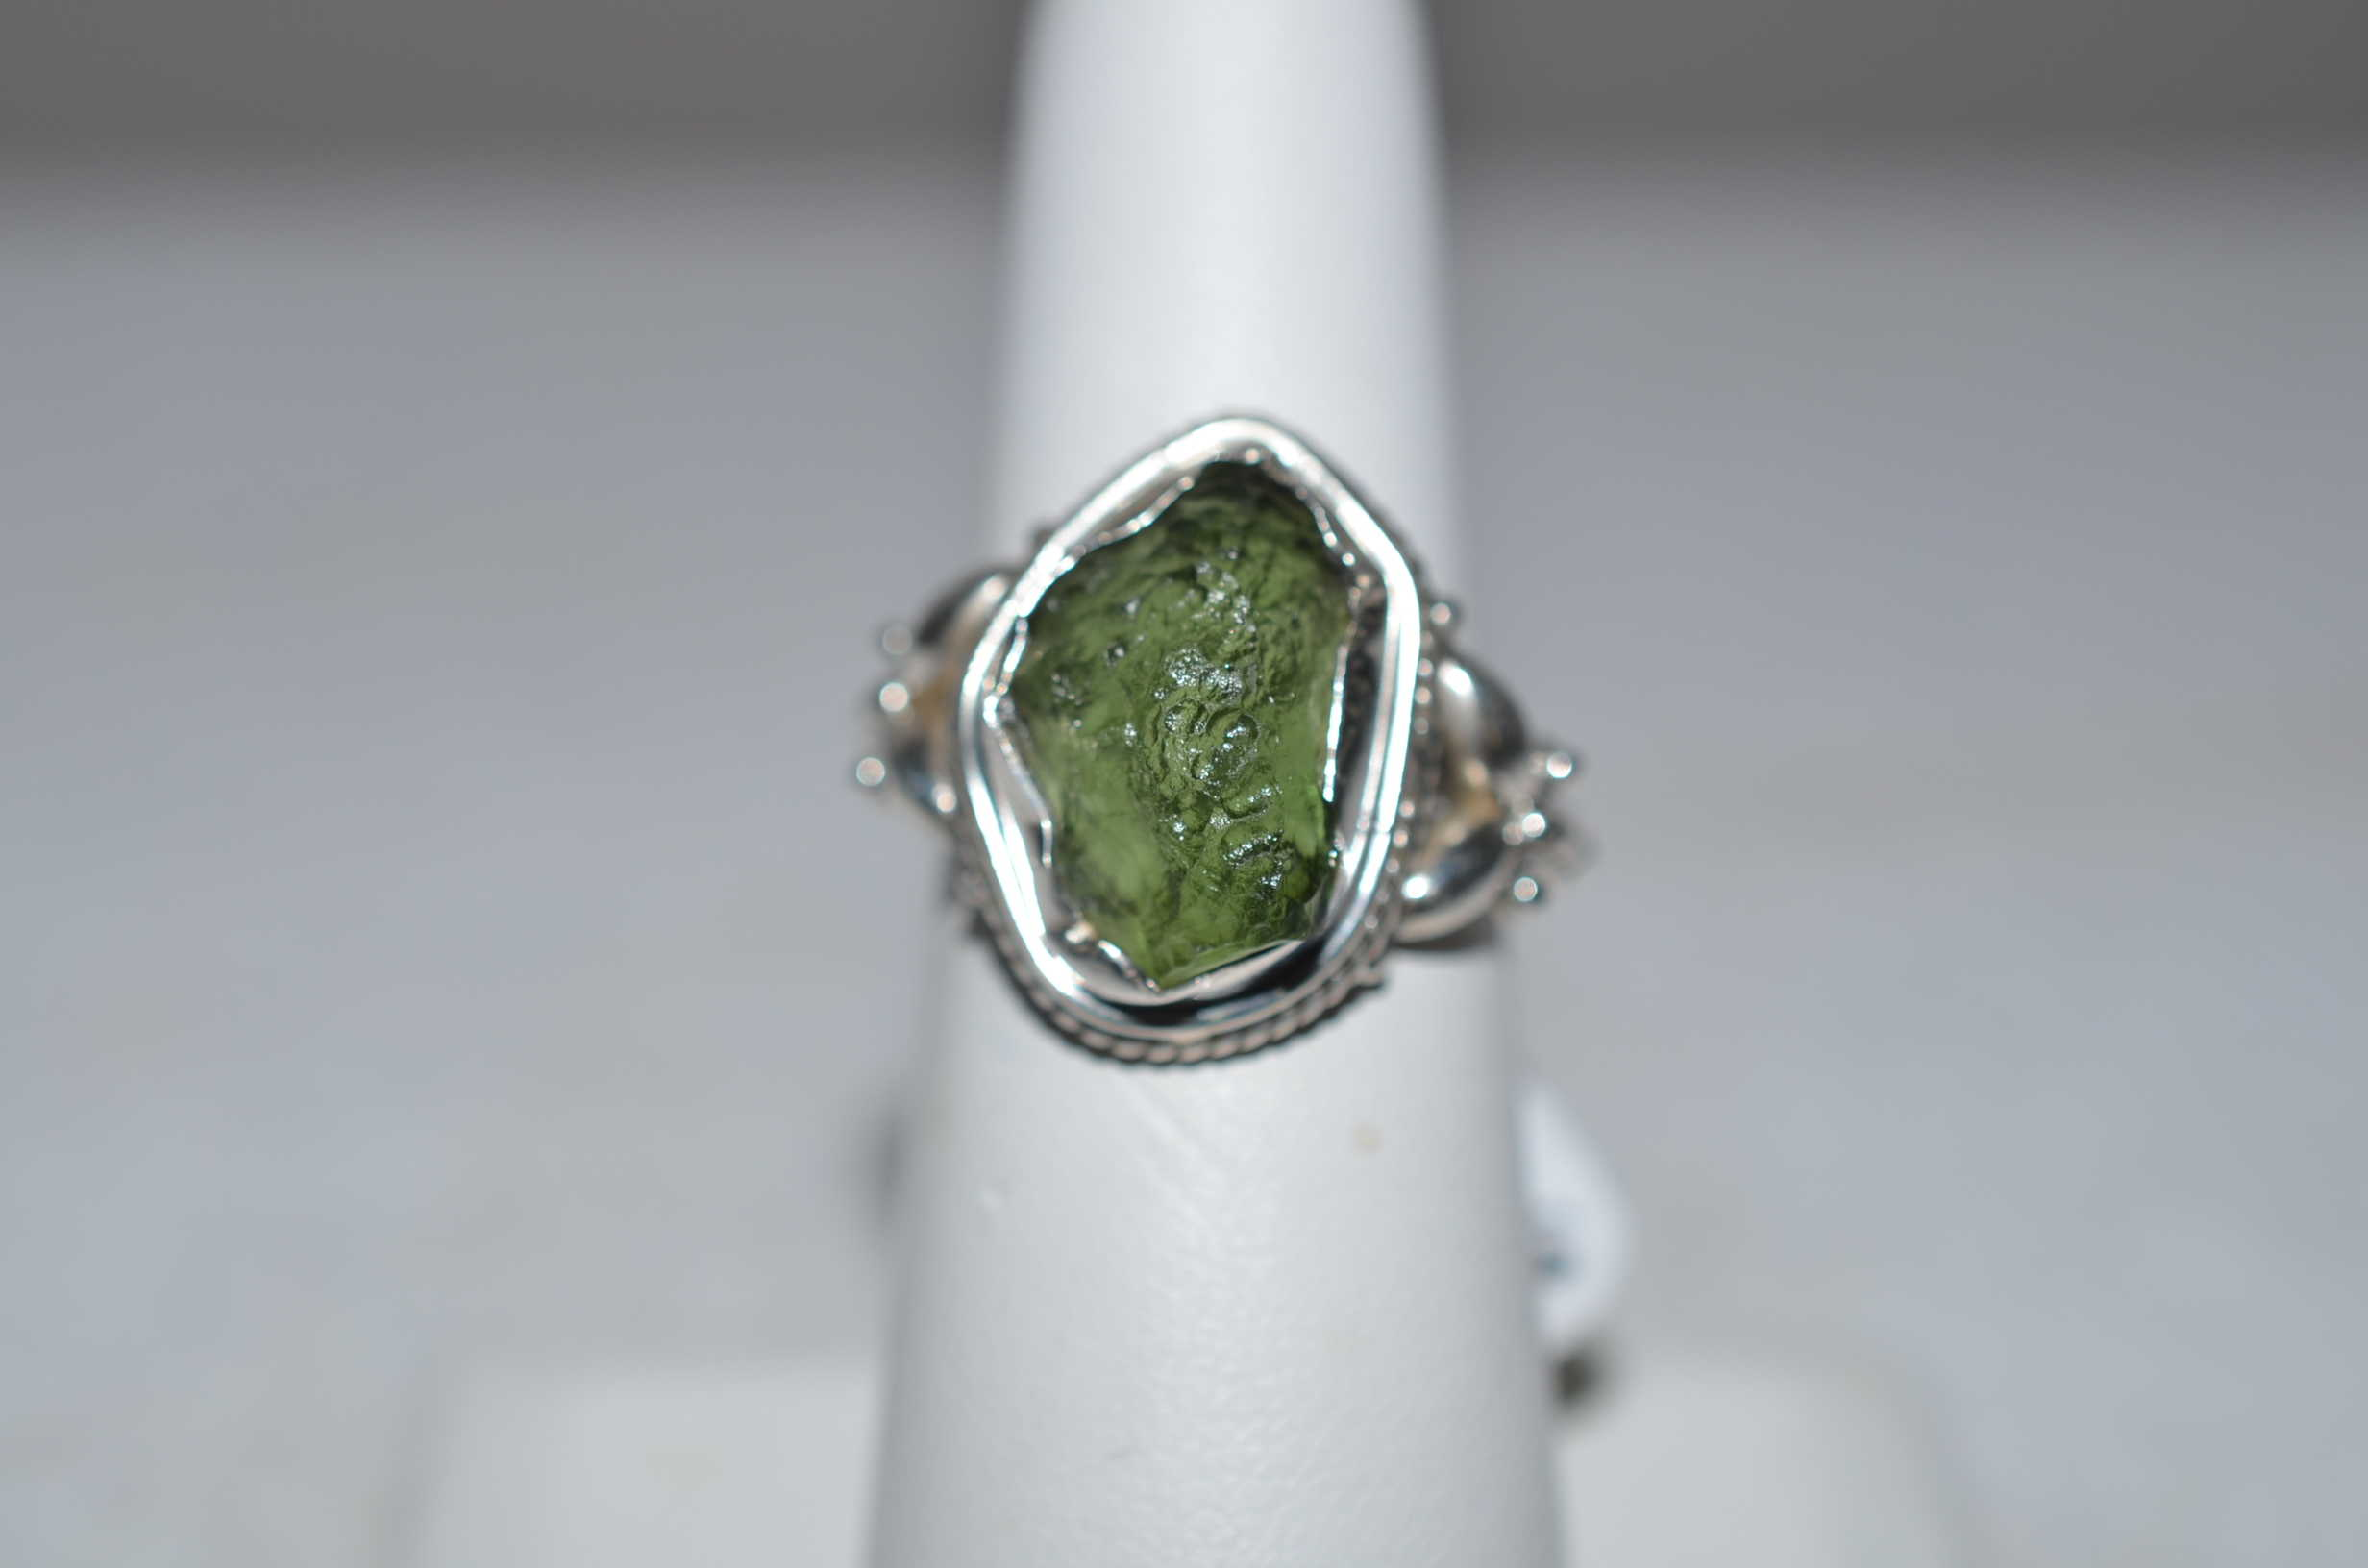 garnet ring cts size split tgw merelani online platinum band sphene rings thai p store silver jewelry mint double over spinel black fashion sterling